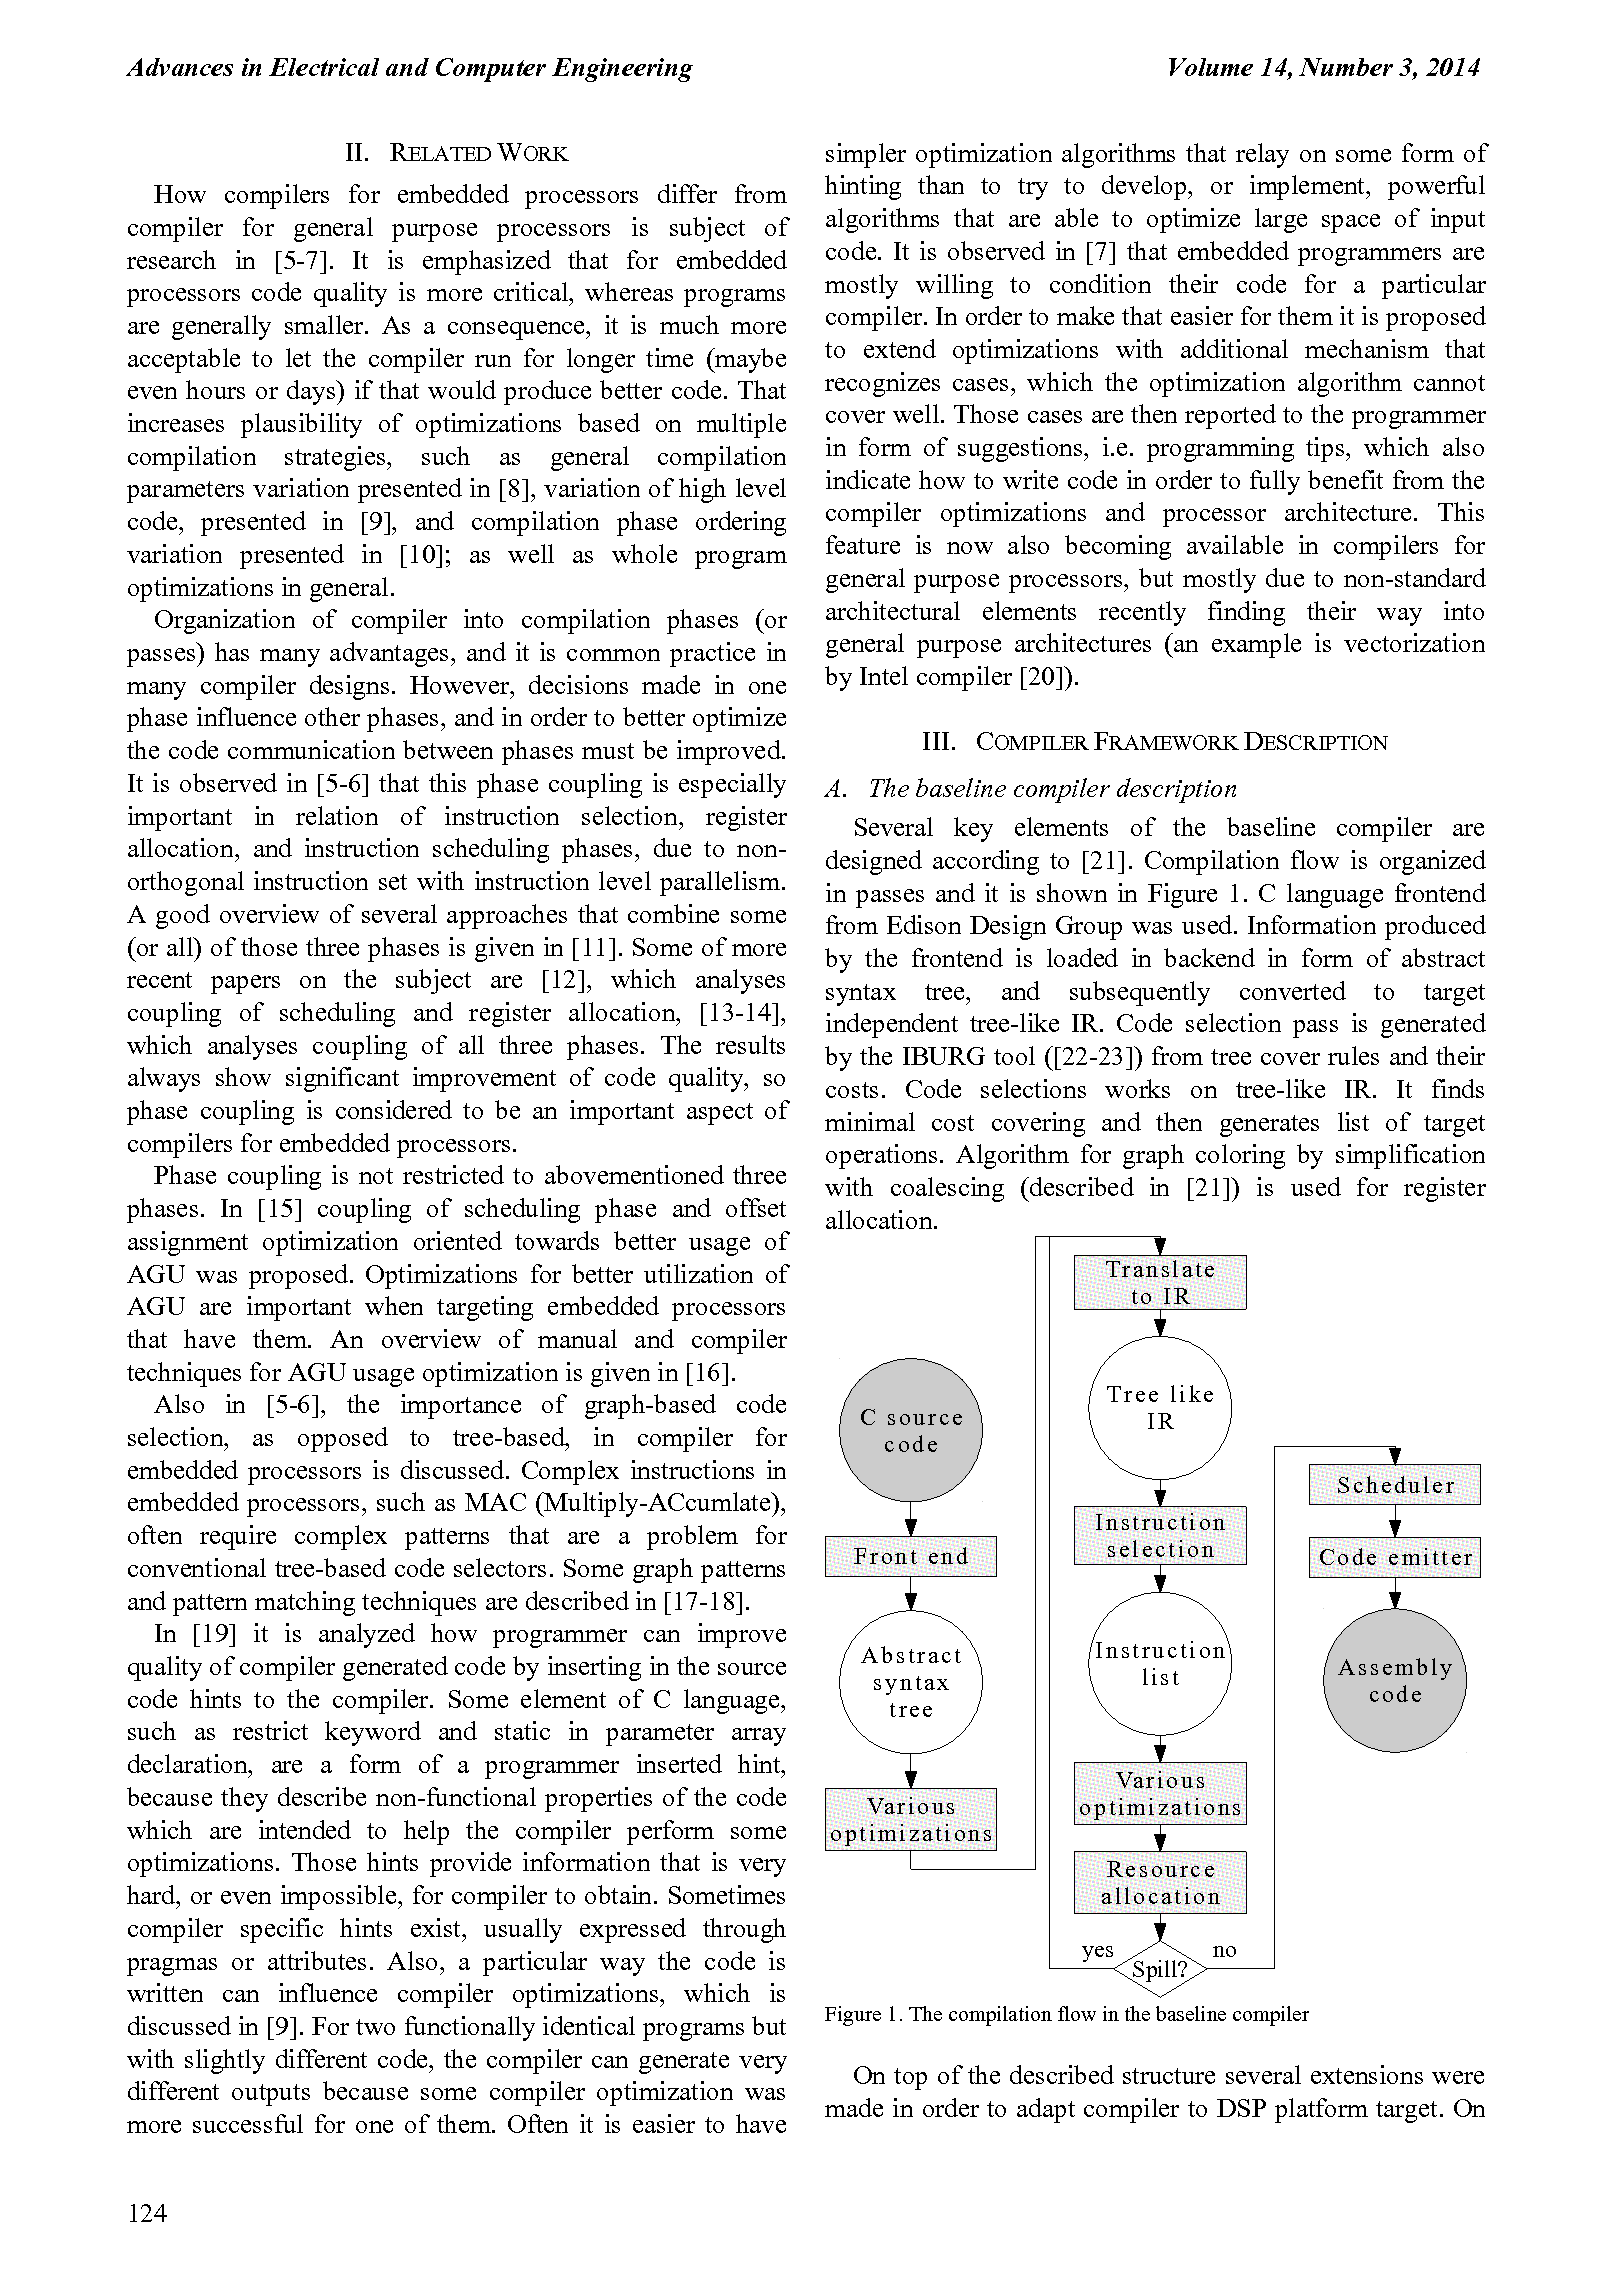 PDF Quickview for paper with DOI:10.4316/AECE.2014.03016